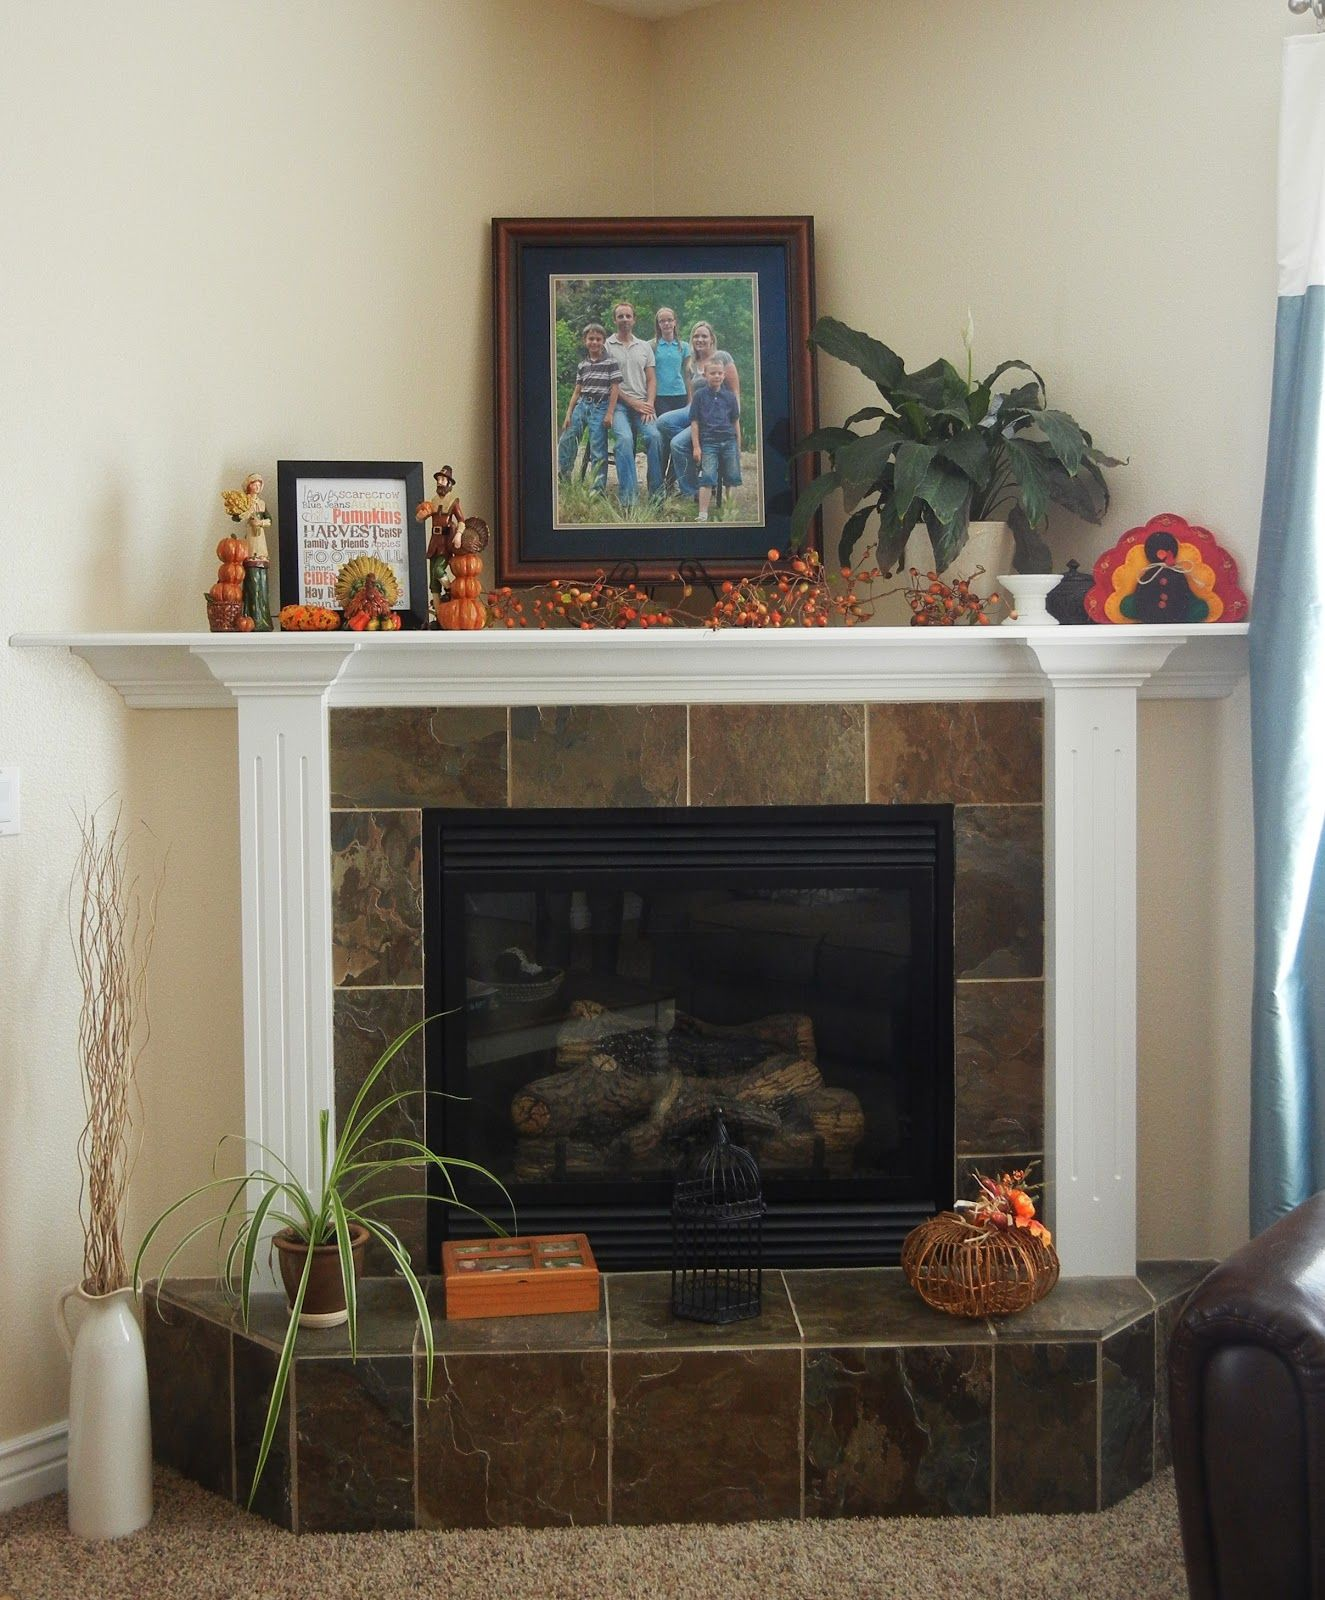 How To And How Not To Decorate A Corner Fireplace Mantel Corner Fireplace Decor Corner Fireplace Mantels Corner Gas Fireplace